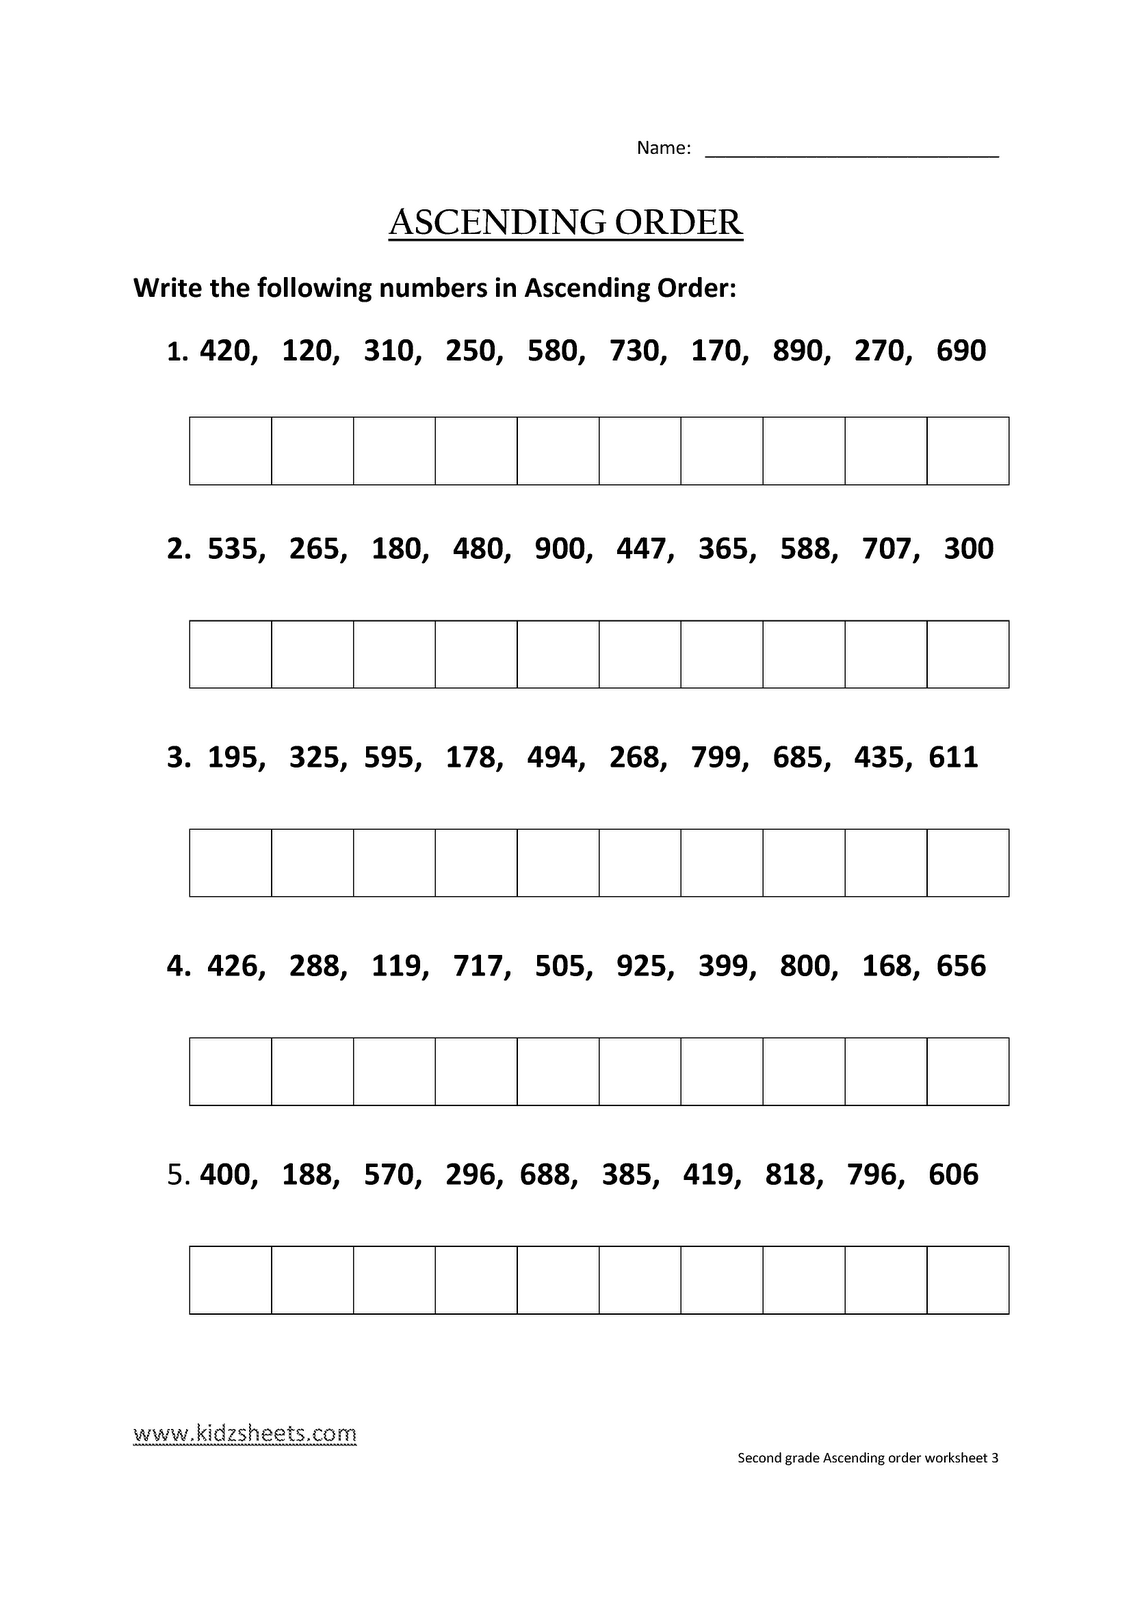 Kidz Worksheets Second Grade Ascending Order Worksheet3